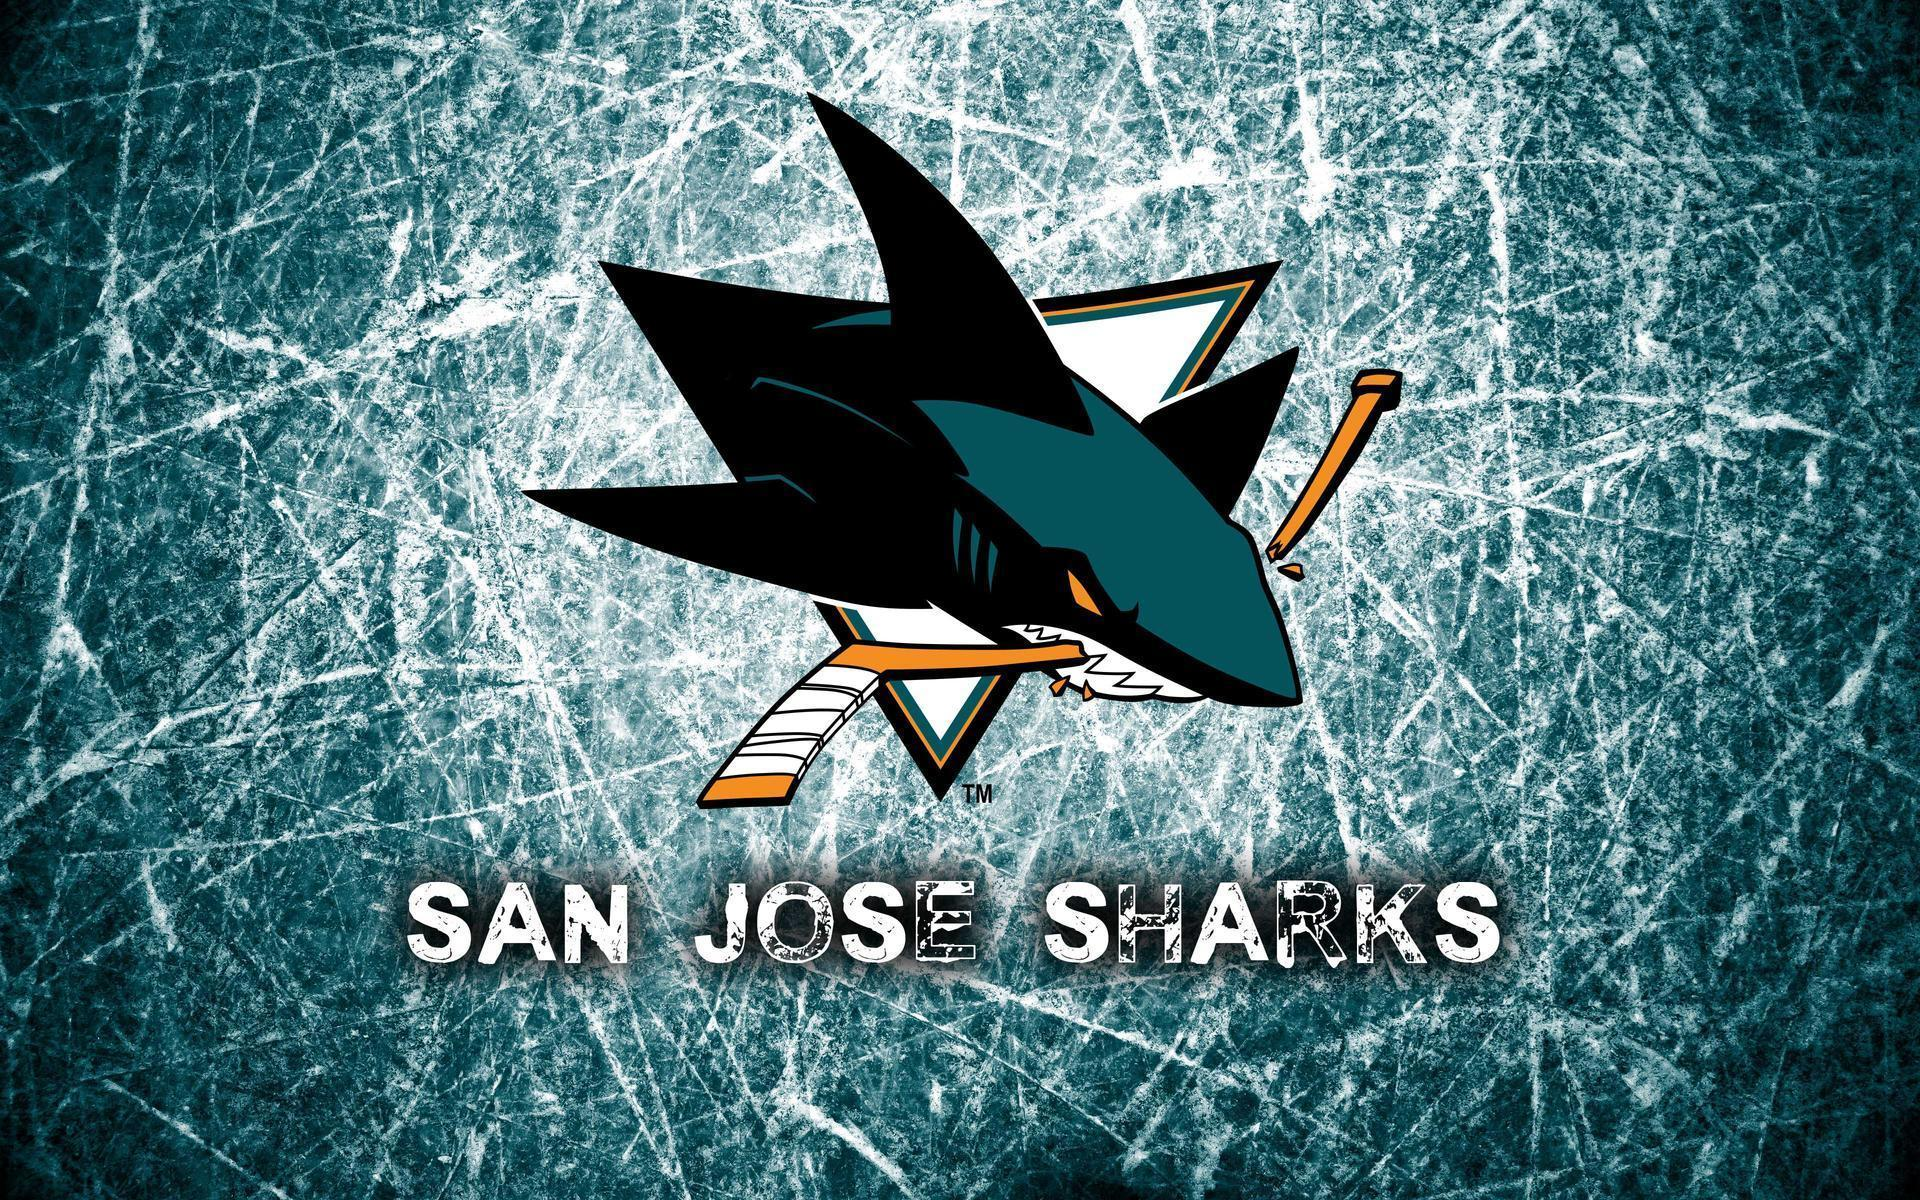 San Jose Sharks Wallpapers - Wallpaper Cave